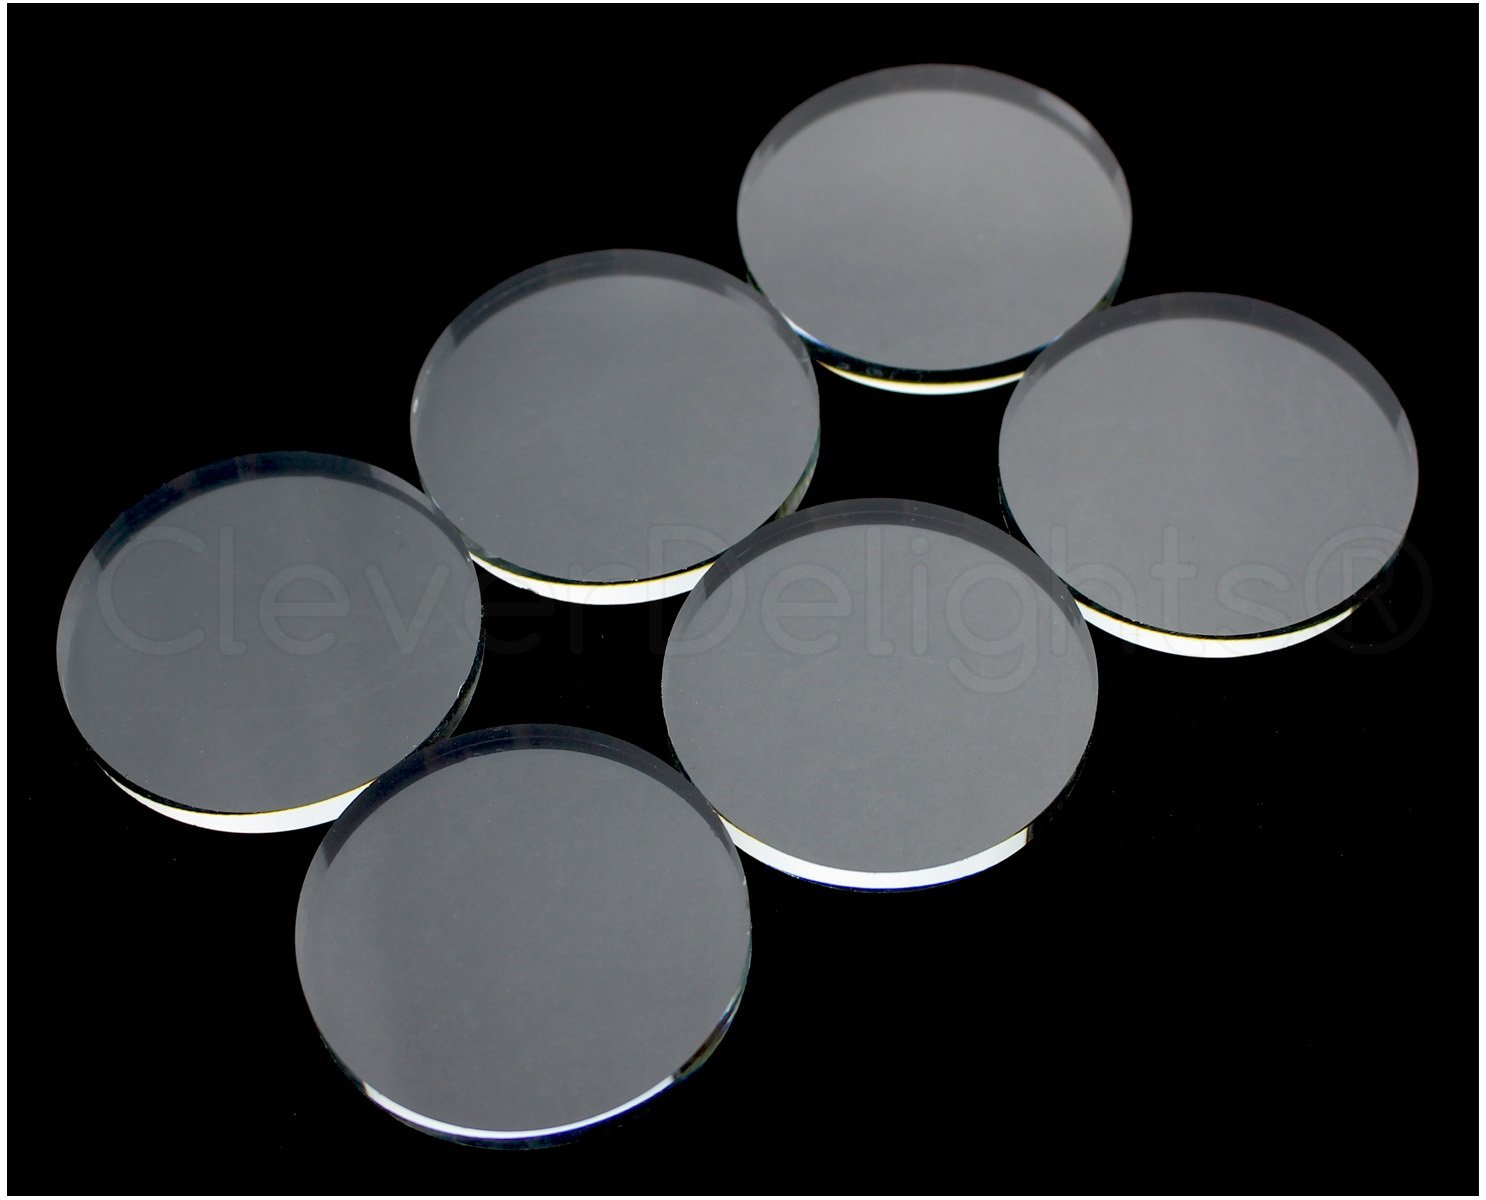 10 CleverDelights Round Glass Tiles - 40mm (1 9/16) Diameter - 2 Flat Sides - Clear Glass Tiles - For Photo Pendants Mosaics Trays - 1 9/16 inch 40 mm Tiles - 4mm Thick